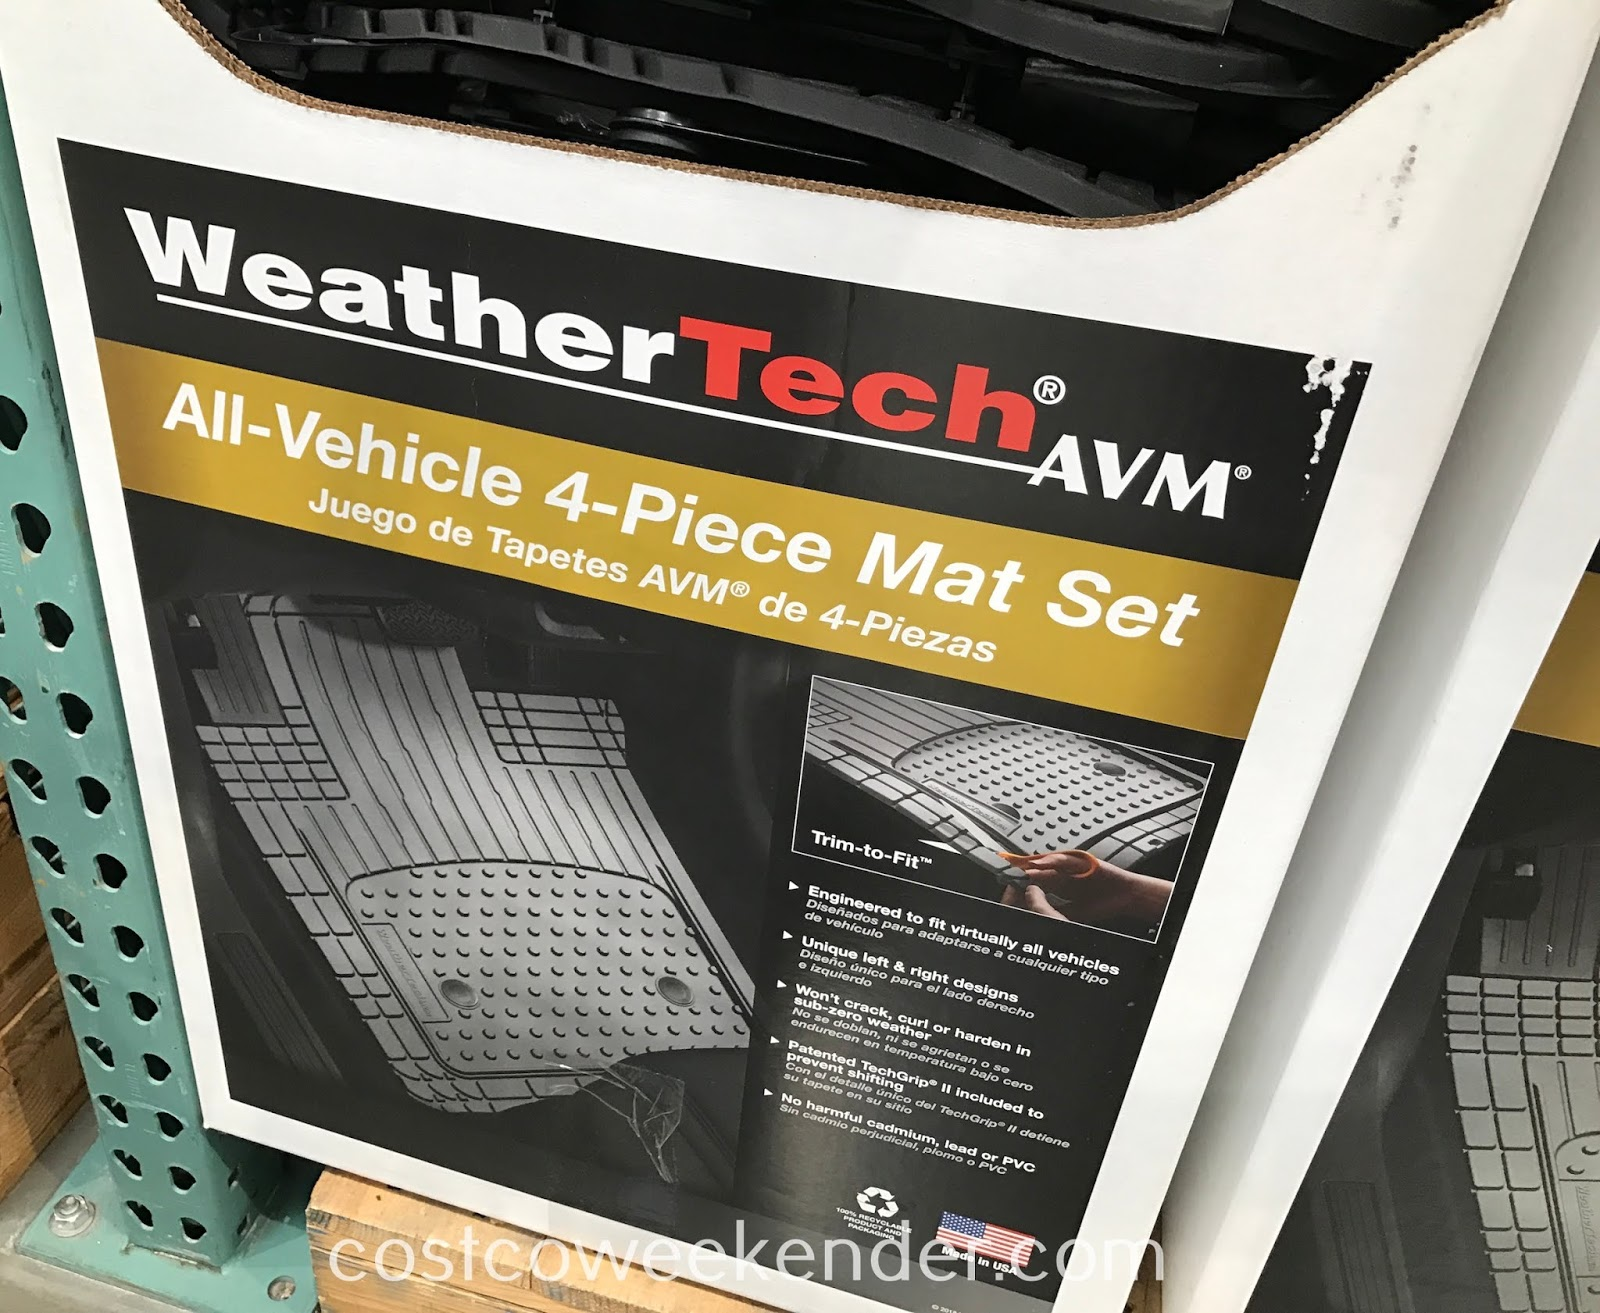 weathertech mats costco